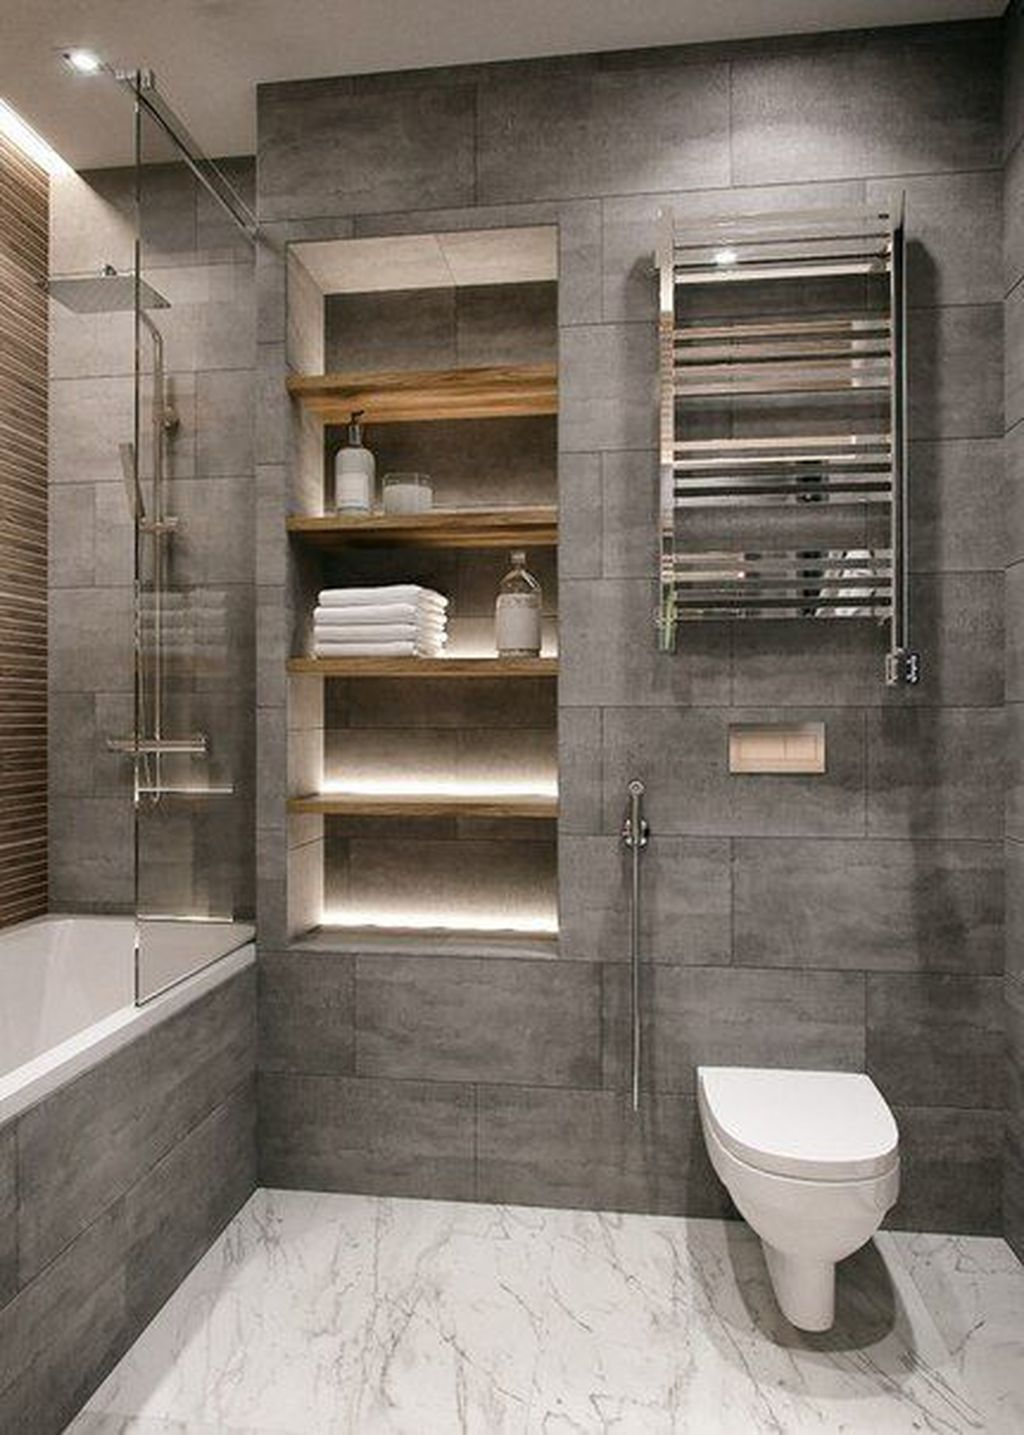 43 Outstanding Bathroom Design Ideas That You Will Totally Love Best Bathroom Designs Small Bathroom Makeover Small Bathroom